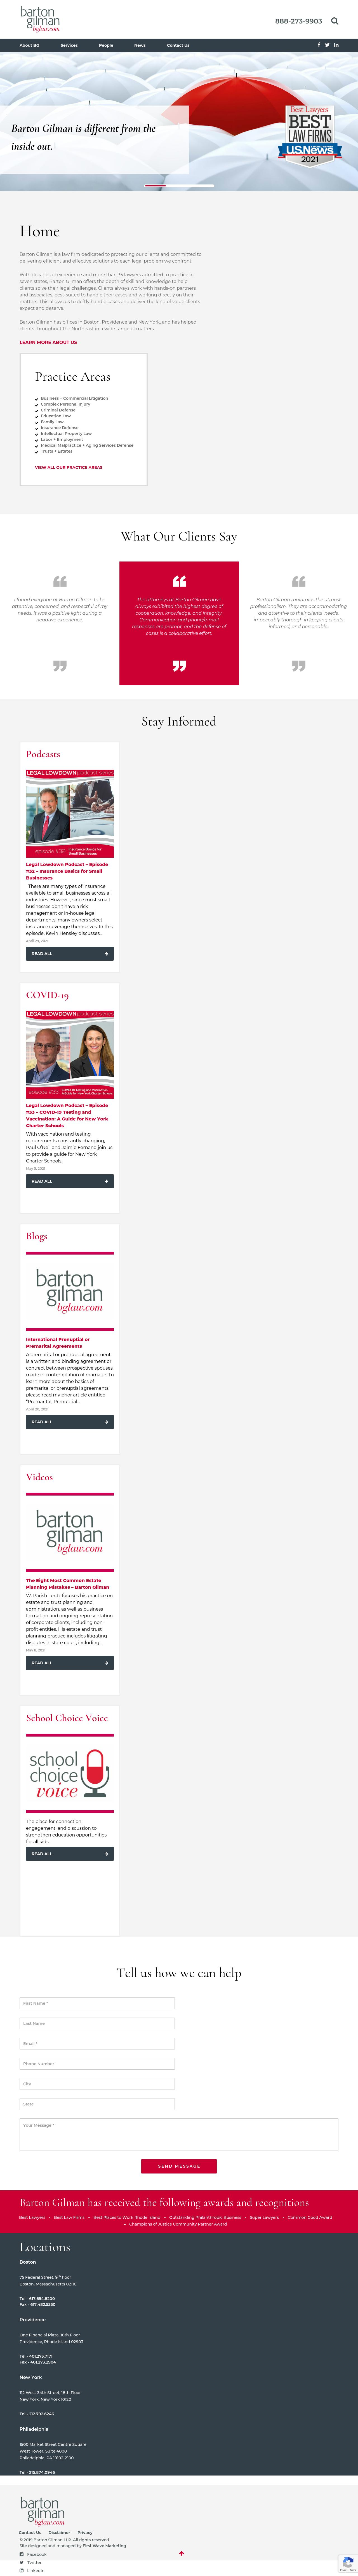 Barton Gilman LLP - Boston MA Lawyers